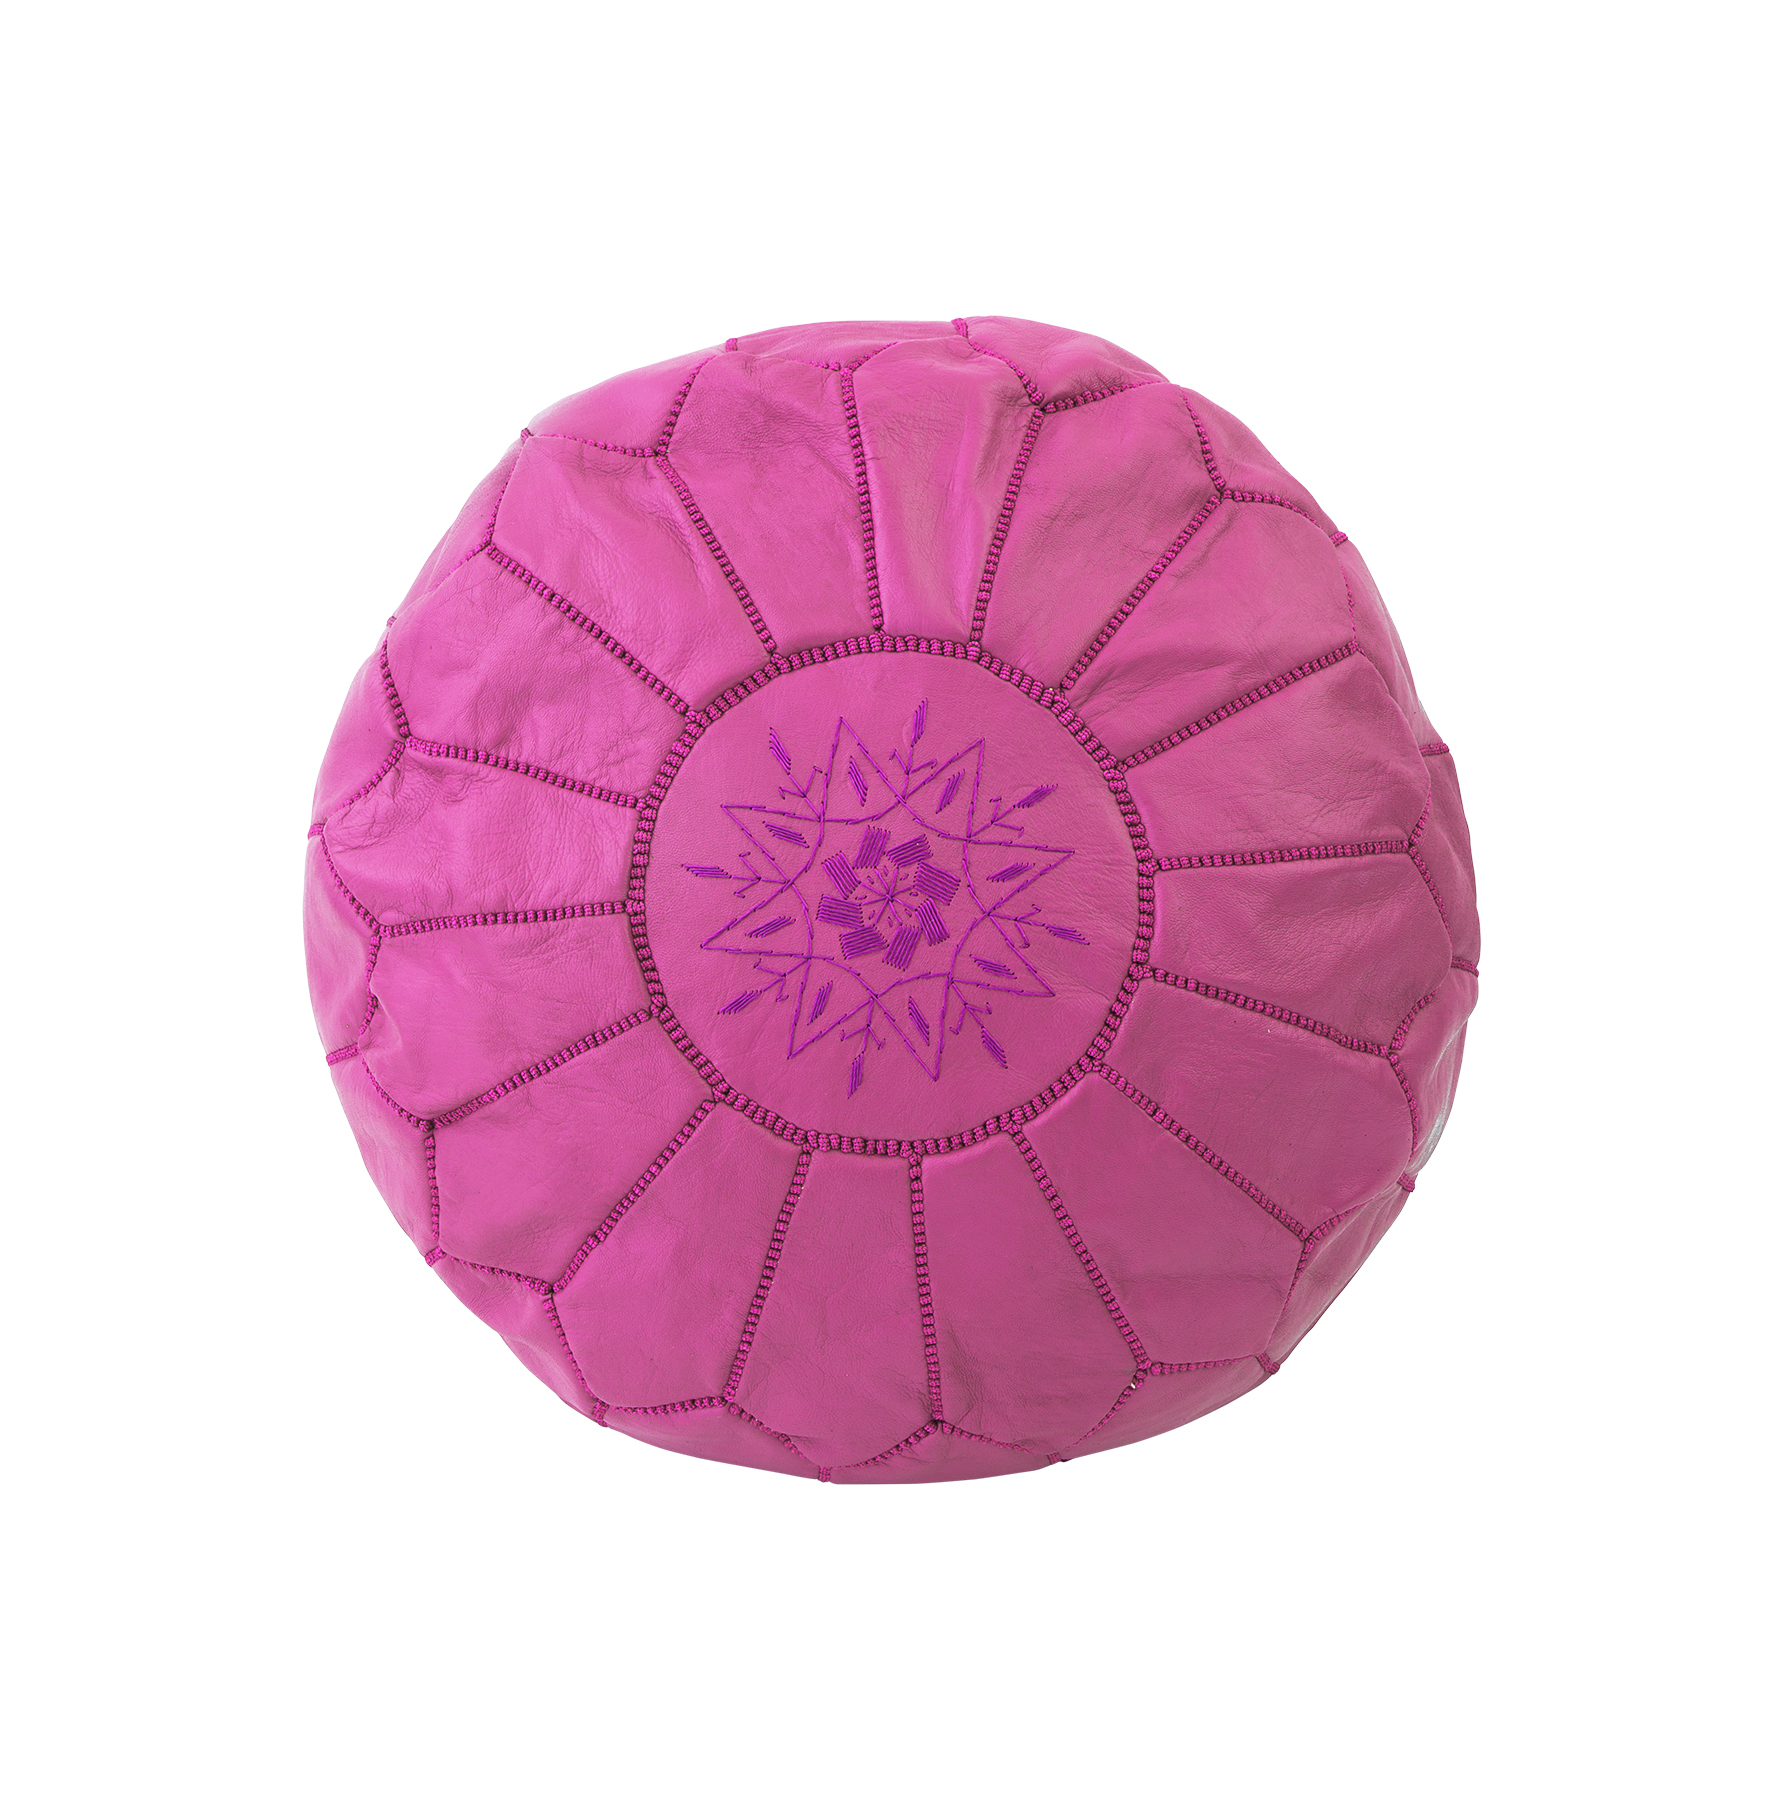 Ottoman Pouf in hot pink